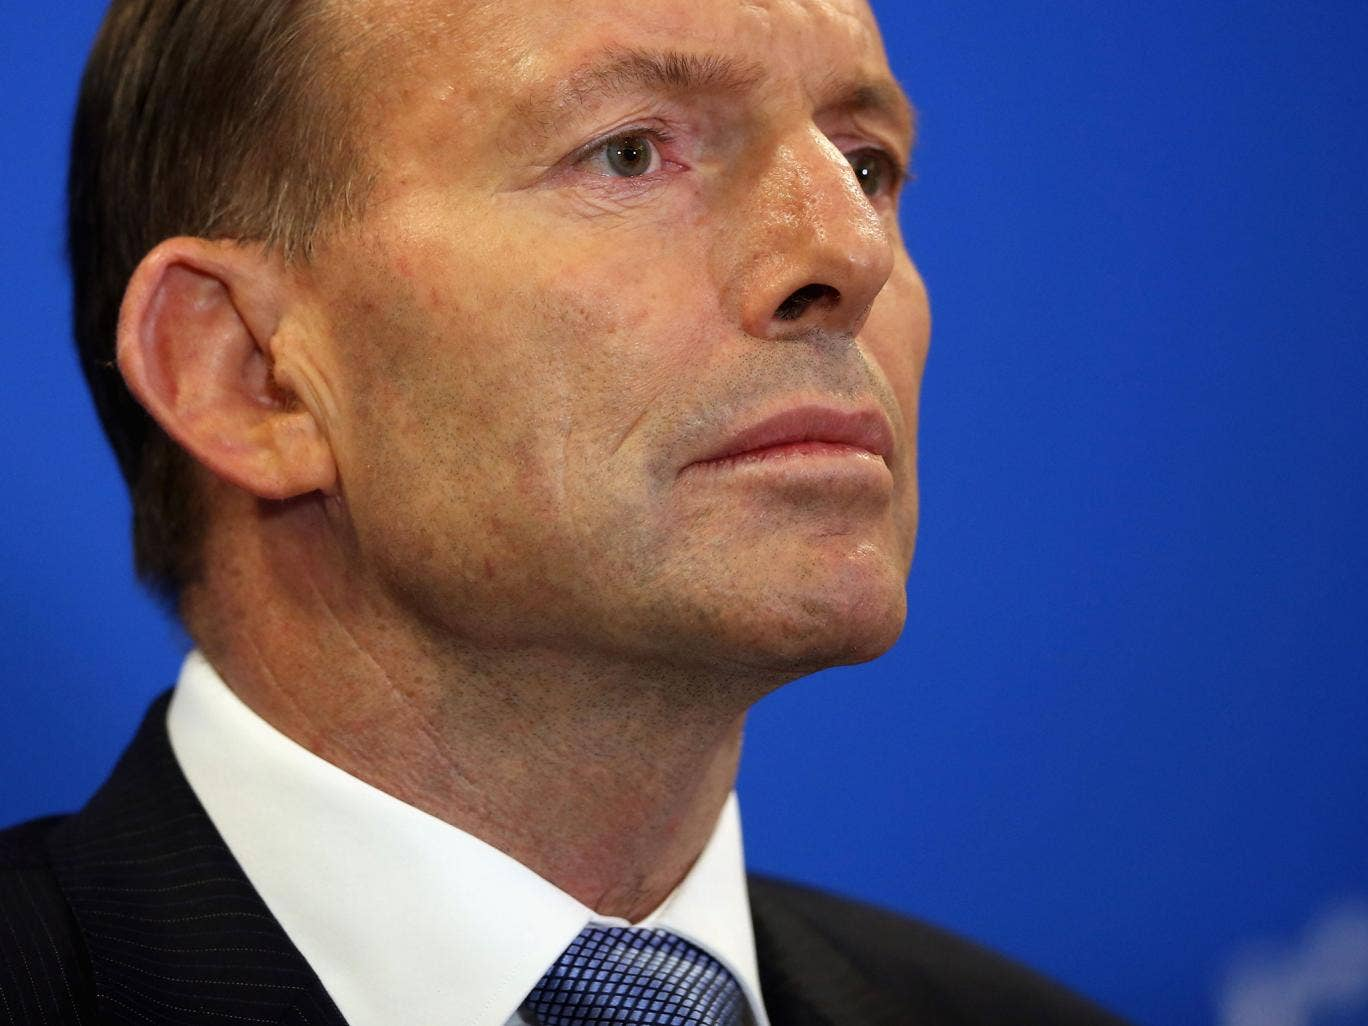 Australian Prime Minister Tony Abbott speaks at a press conference on August 12, 2014 in London, England.